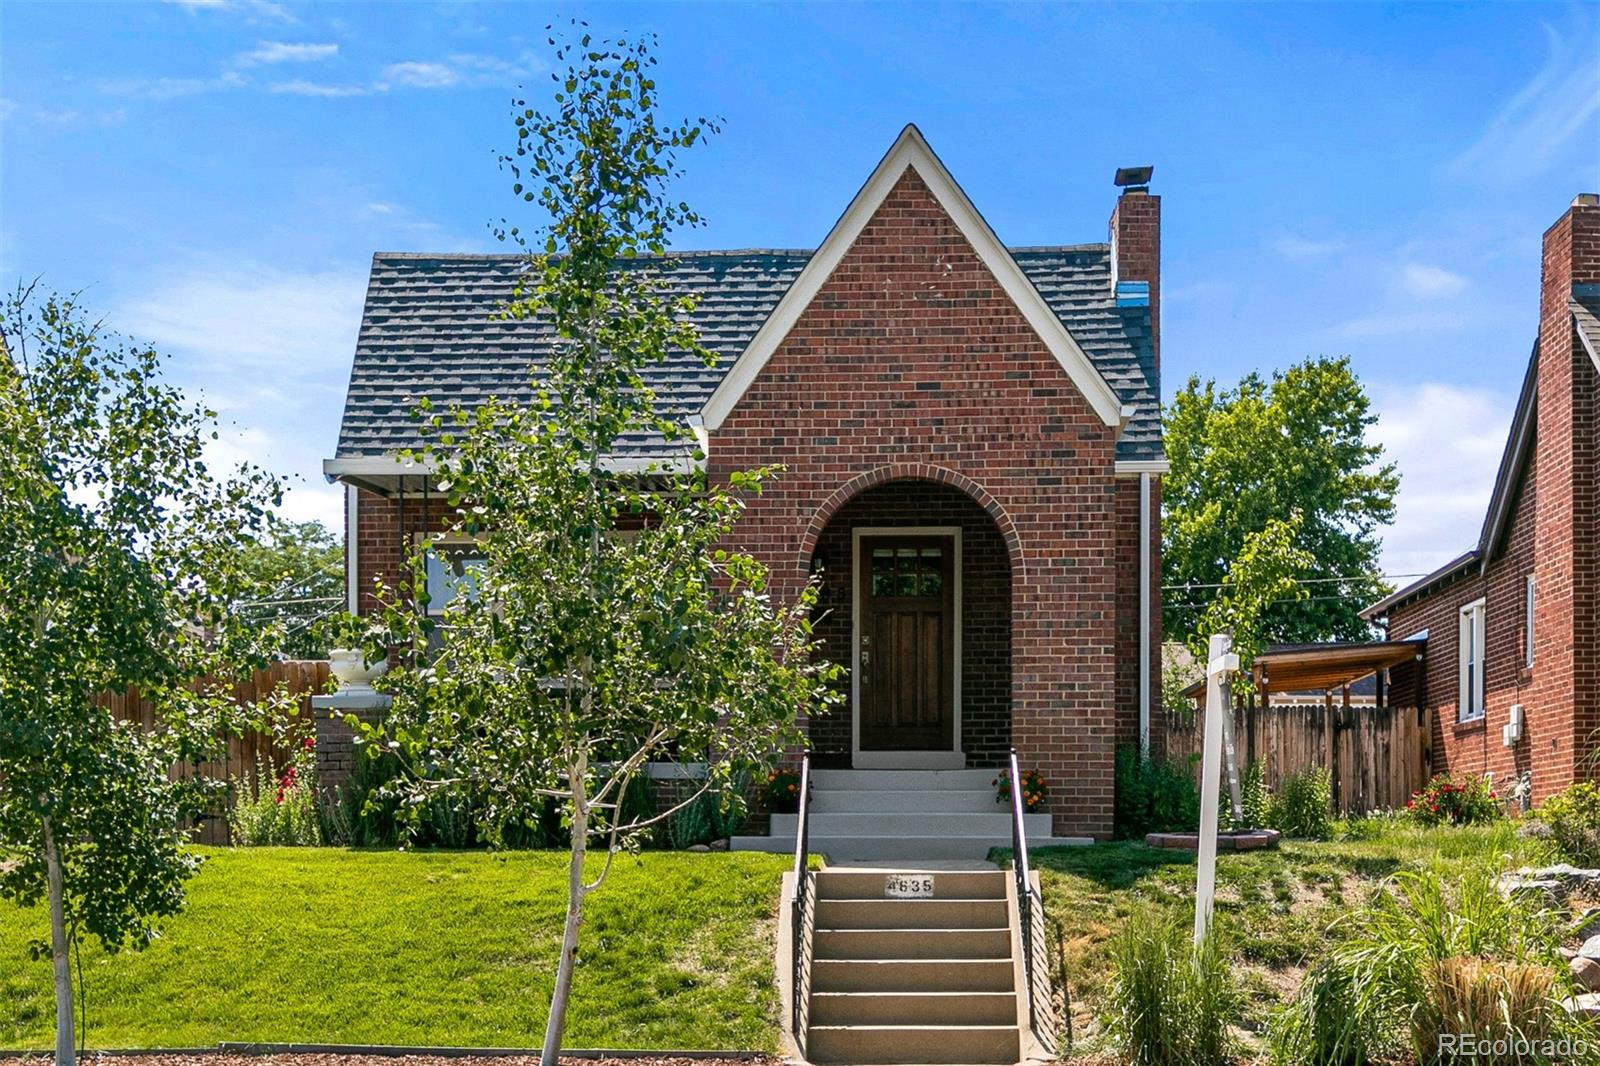 Is city life calling your name? This contemporary Sunnyside Tudor is ready for your personal touch. The main level boasts a sizable living area and showcases an updated kitchen with modern white cabinets, Carrera countertops, and stainless-steel appliances. The finished basement offers two conforming bedrooms, a sizable adjoining bathroom, and additional living space. Recent upgrades include fresh interior and exterior paint, an impact-resistant roof, double-pane windows, central AC, and plank vinyl flooring in the basement. Kick back and enjoy endless sunsets and star-lit nights in the private, tastefully landscaped, west-facing backyard. True value shines through with proximity to Rocky Mountain Lake Park, multiple shopping districts, restaurants, coffee shops, Downtown Denver, and the Rocky Mountains. Do not miss the opportunity to schedule a tour today! A 2-10 Home Warranty will be purchased on behalf of buyers and included upon successful closing.